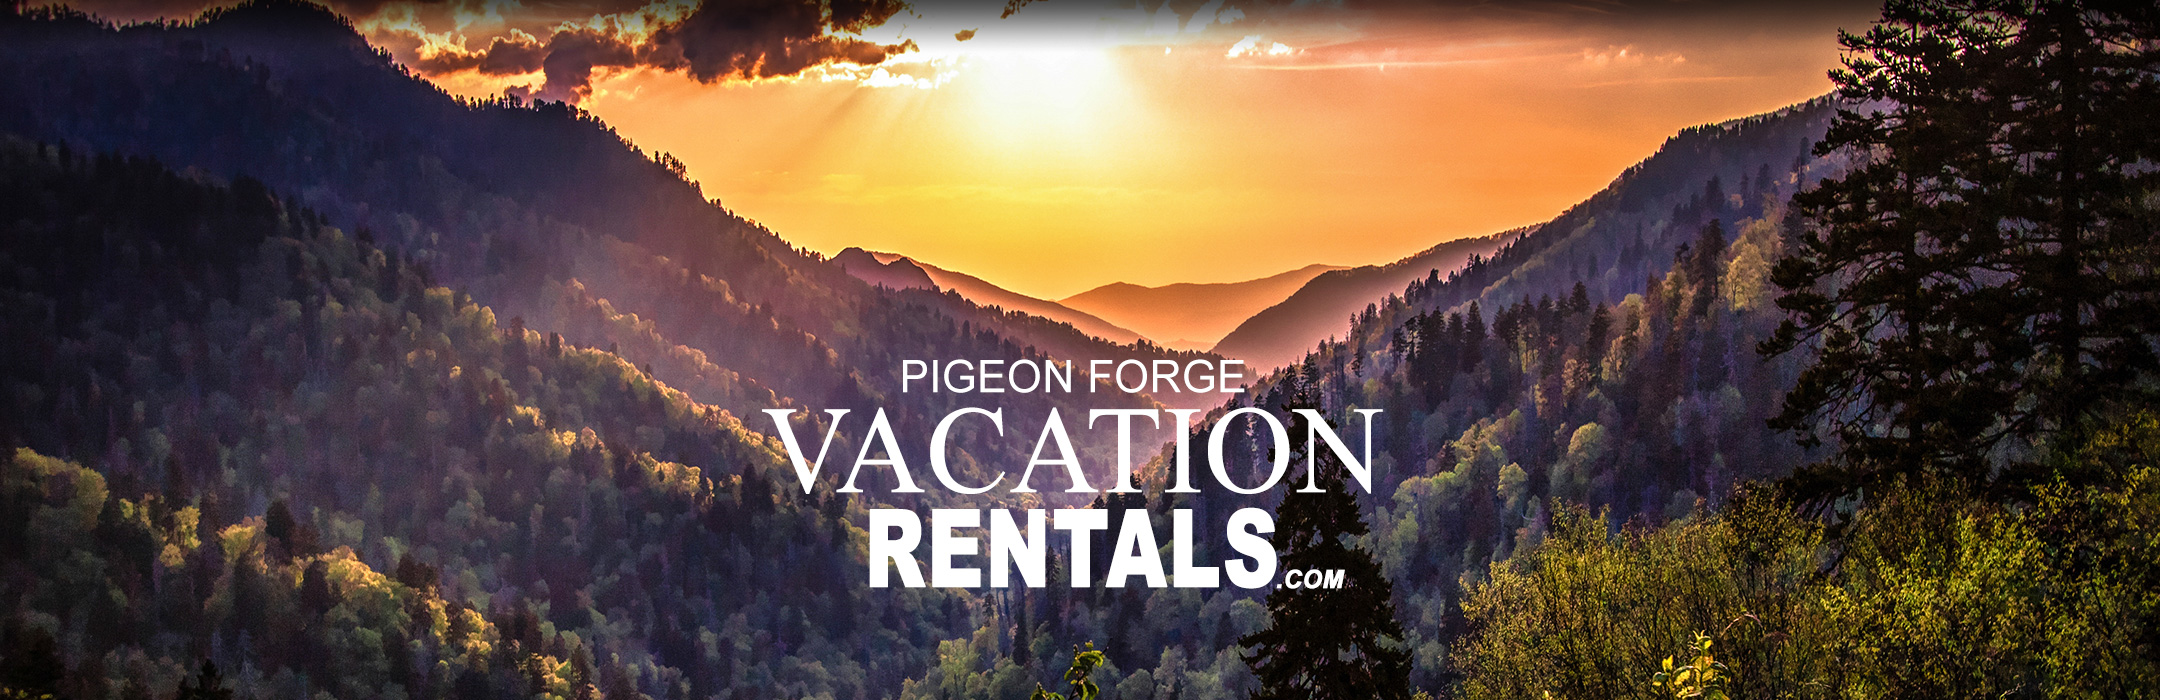 Cabin Rentals Pigeon Forge, Cabins in Pigeon Forge. What to do in Pigeon Forge., Pigeon Forge Cabins, Pigeon Forge Large Group Cabins, Smoky Mountain Cabin Rentals, Smoky Mountain Cabins, Summit Cabin Rentals